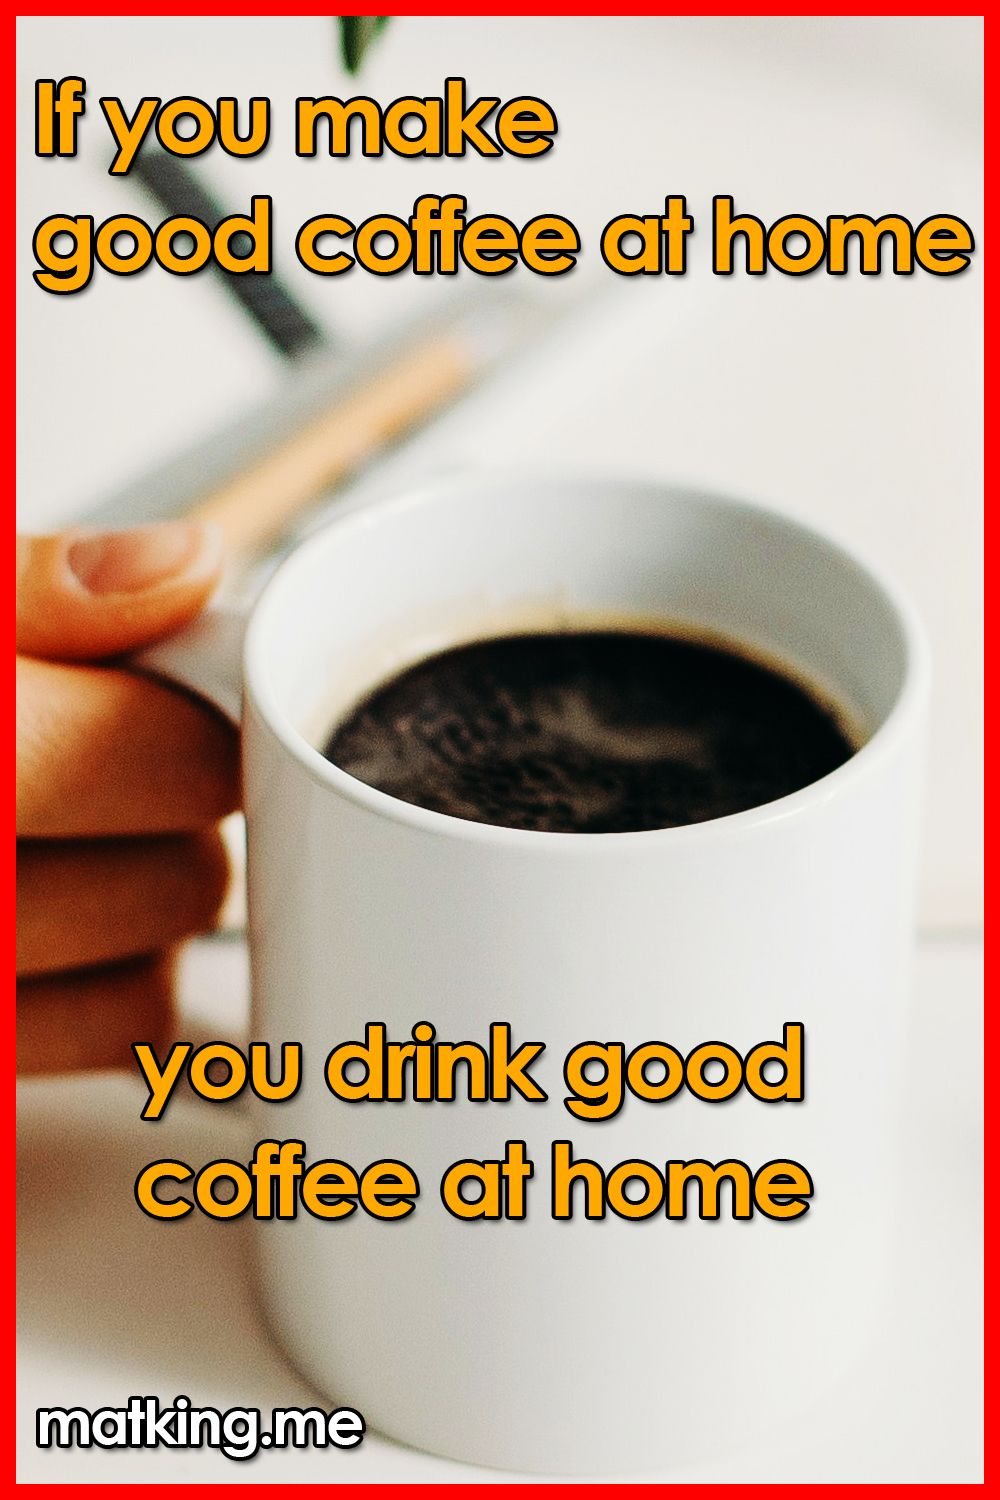 Good morning coffee begins with good coffee and good